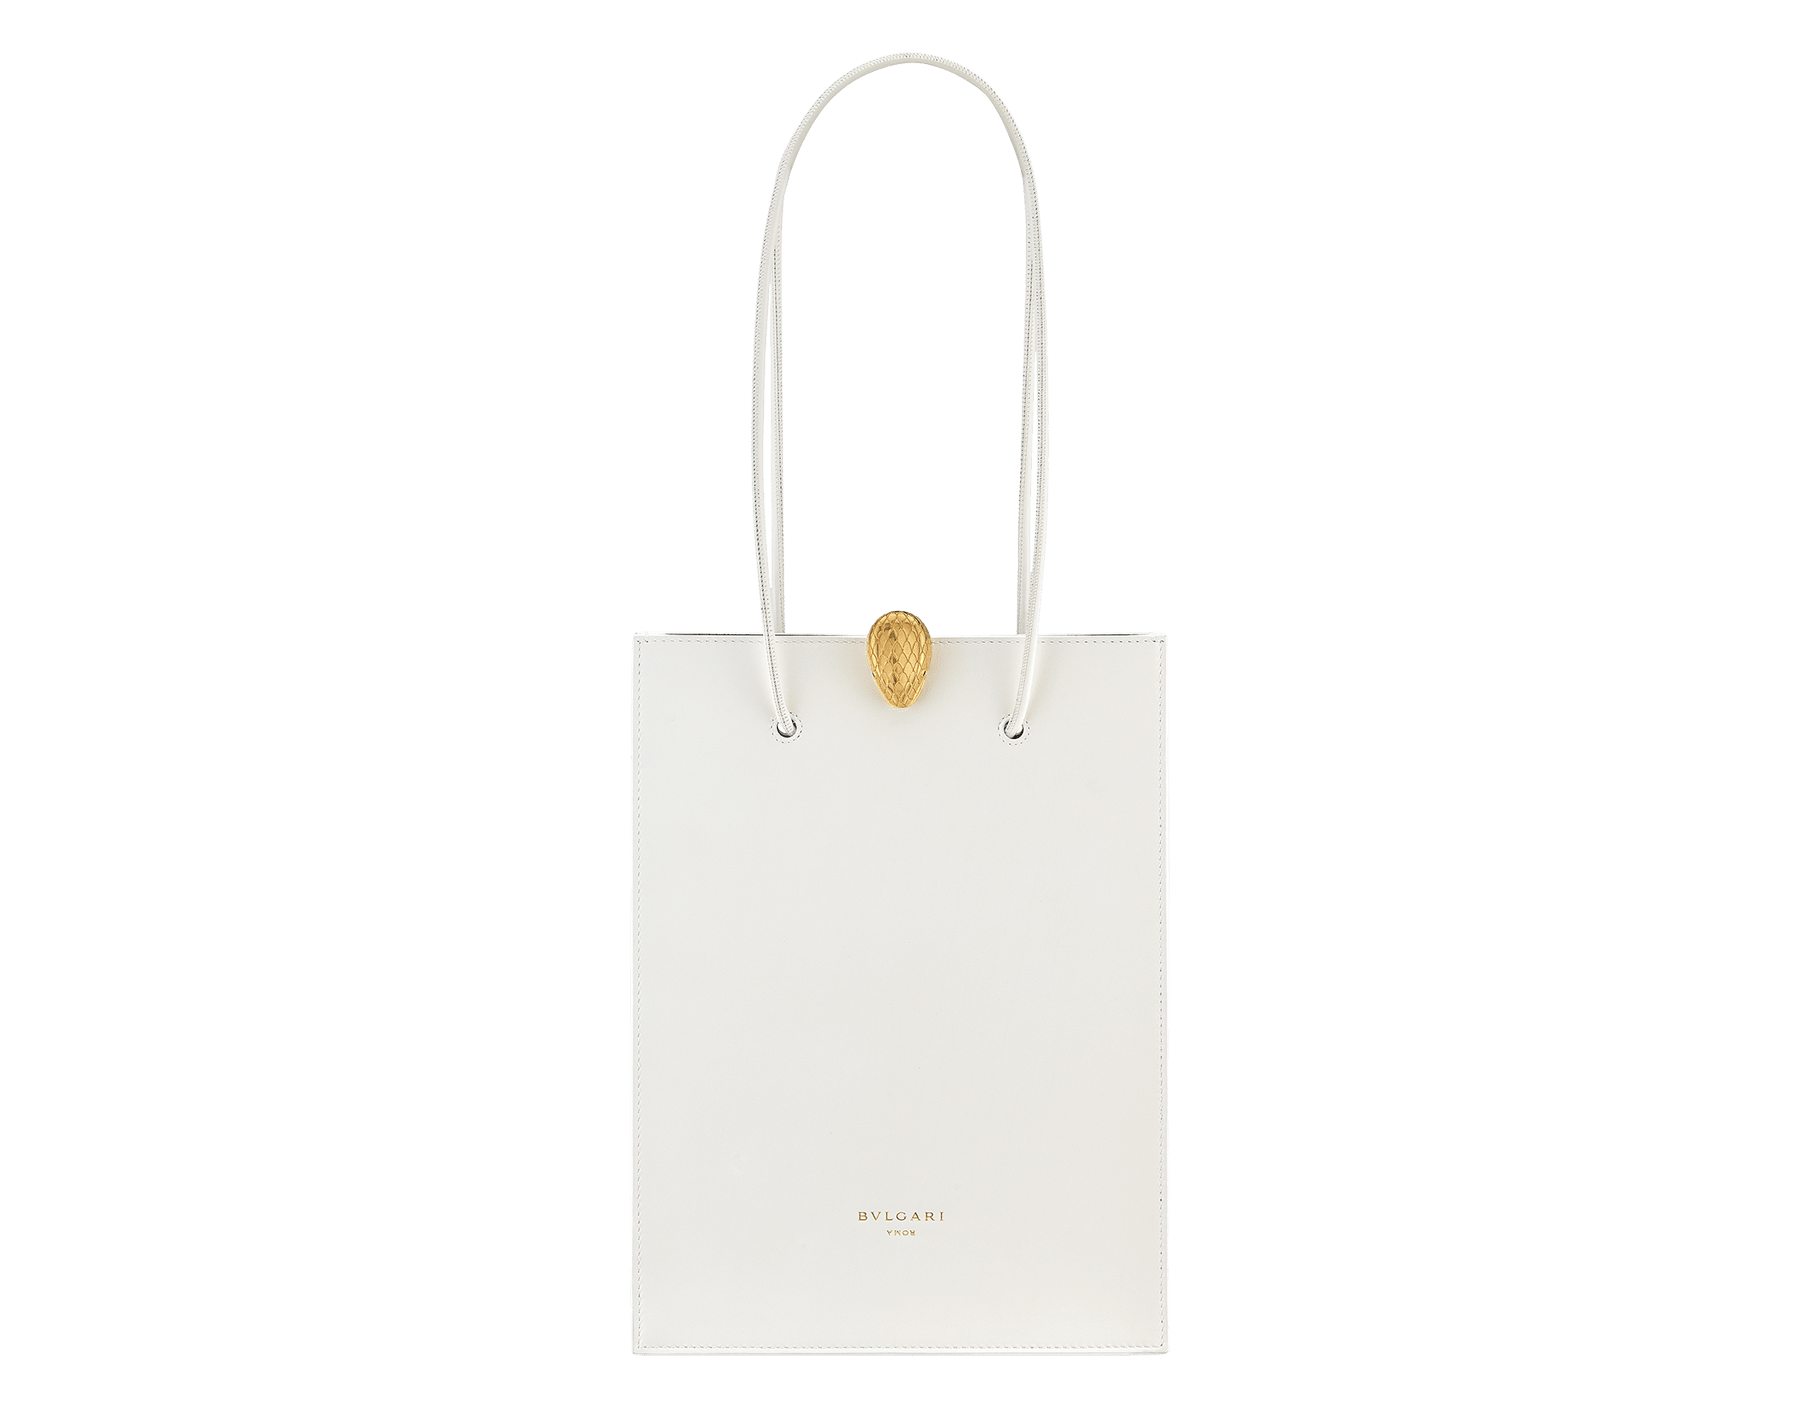 Alexander Wang x Bvlgari shopping tote bag in smooth white calf leather. New Serpenti head closure in antique gold plated brass with tempting red enamel eyes. Limited edition. 288730 image 1